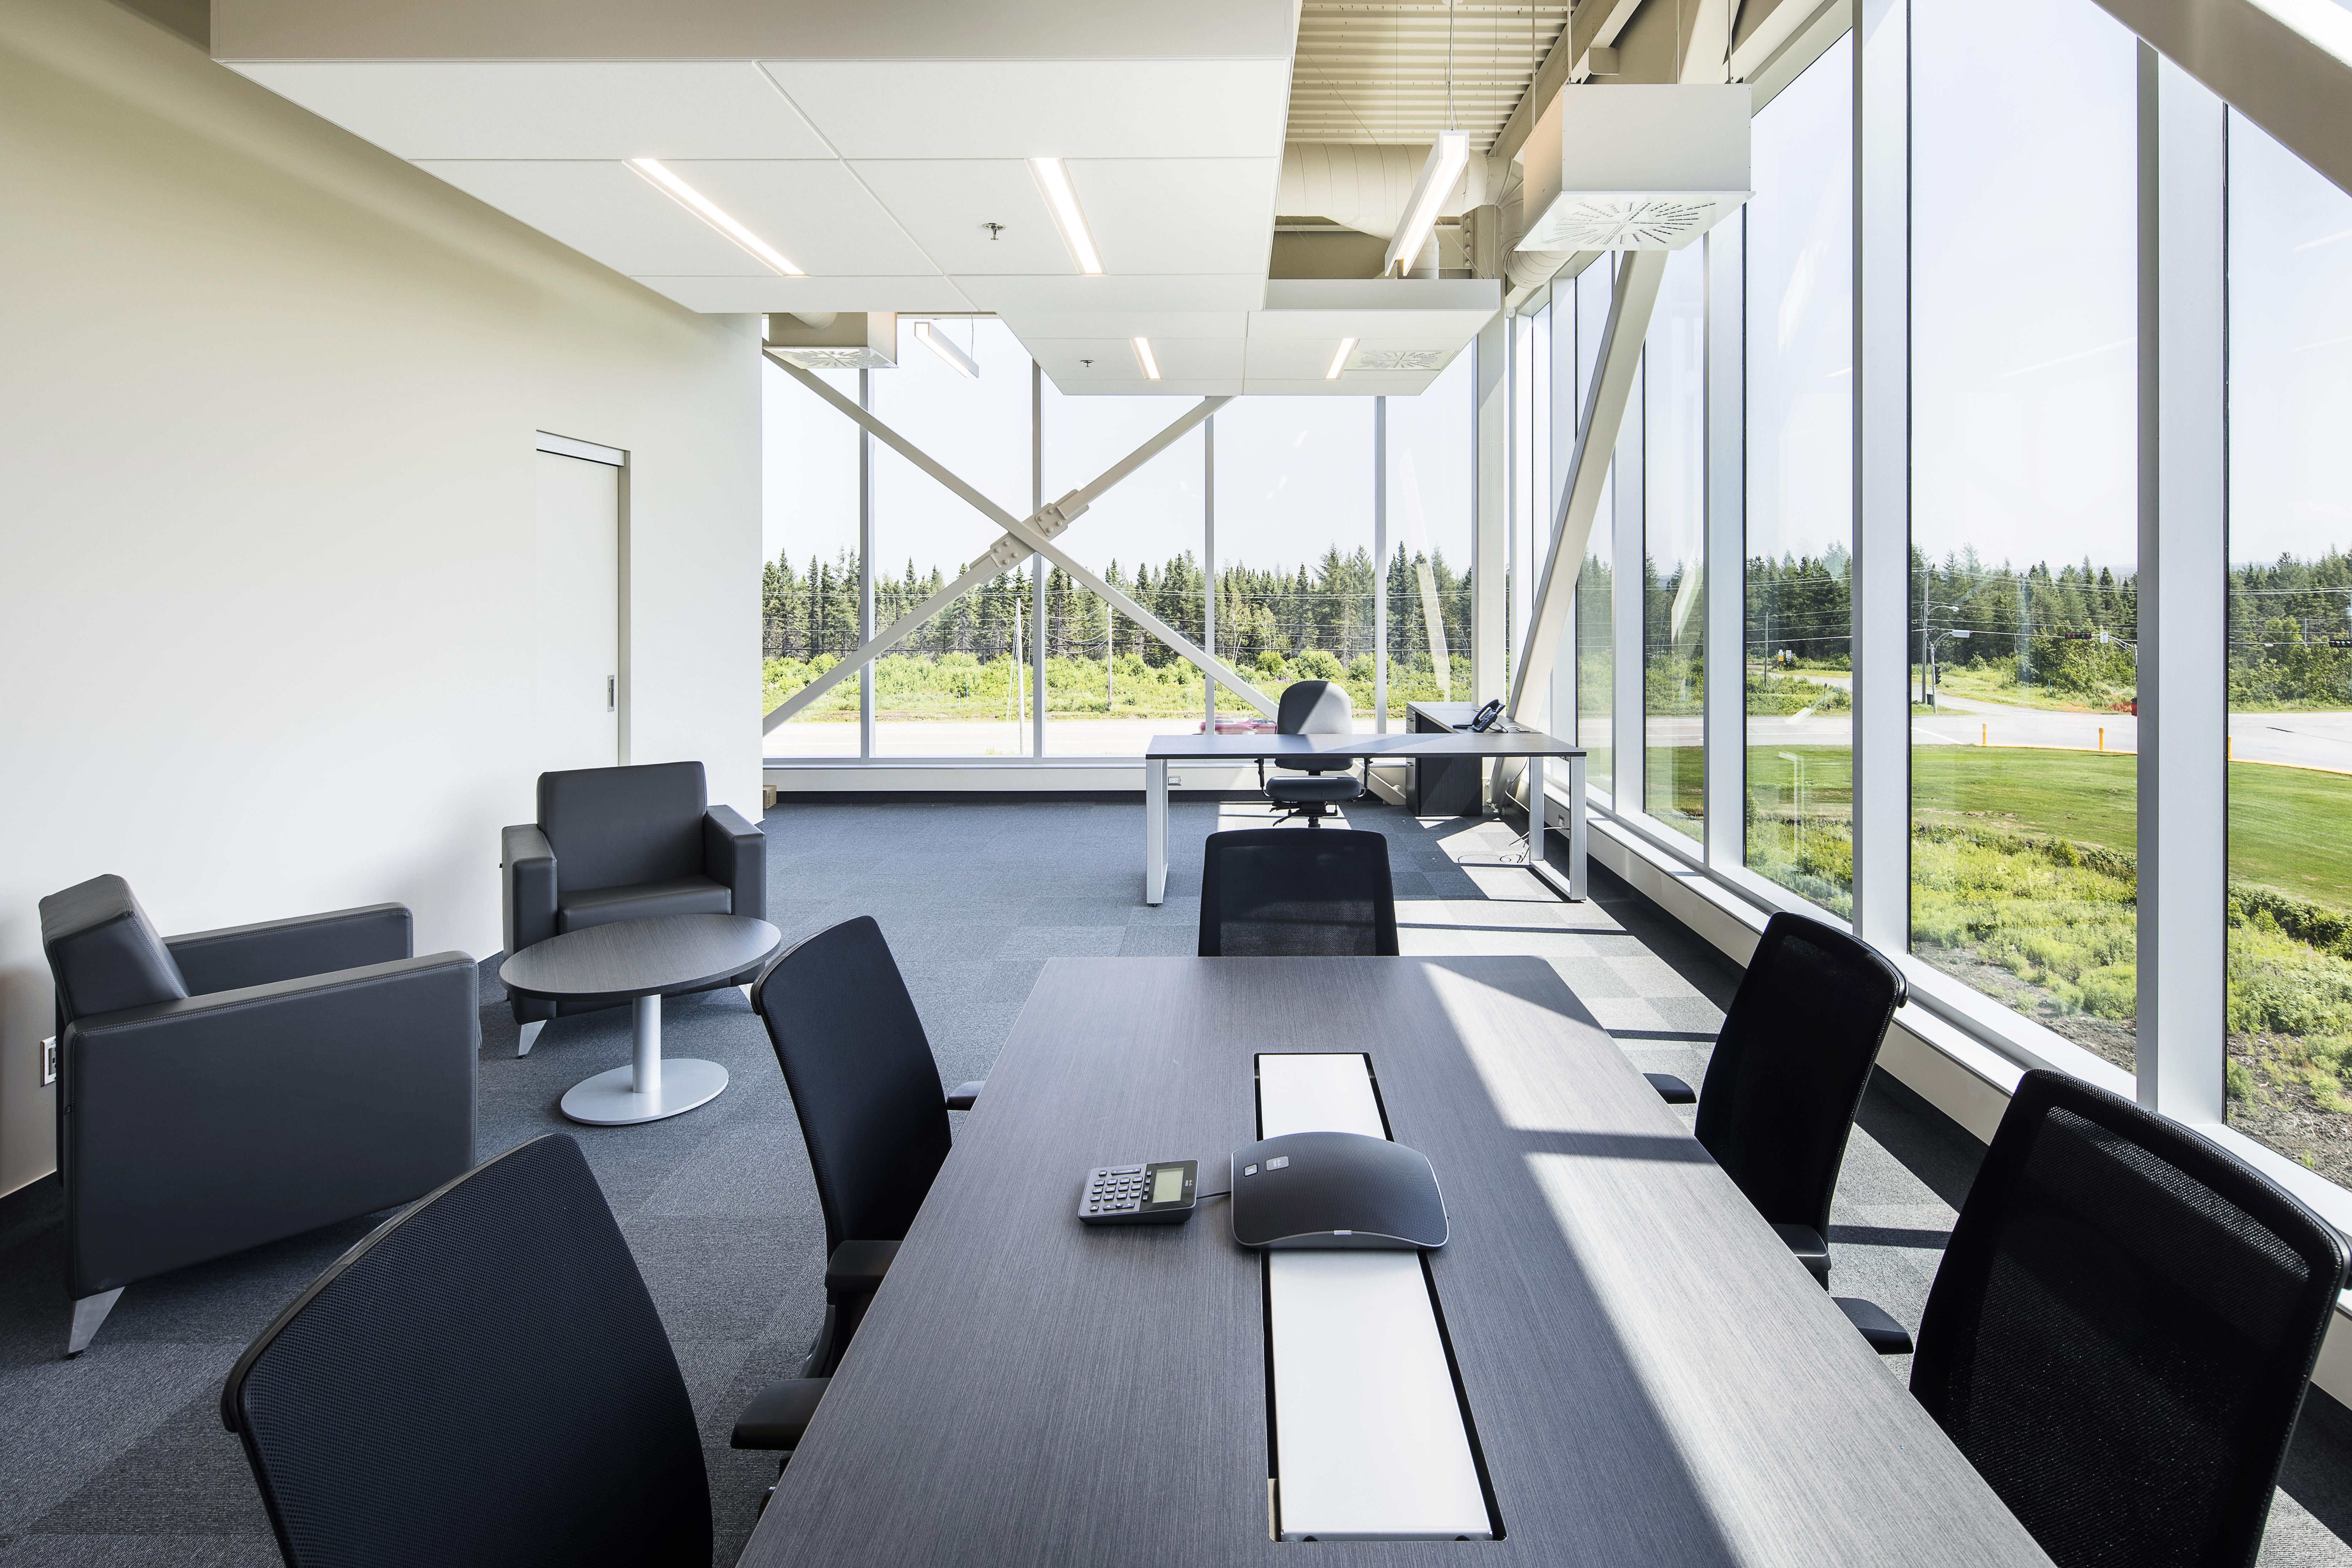 Beautiful Office Furniture By Artopex Contacted Us To Get A Quote Interior Design Firms Interior Design Design Firms